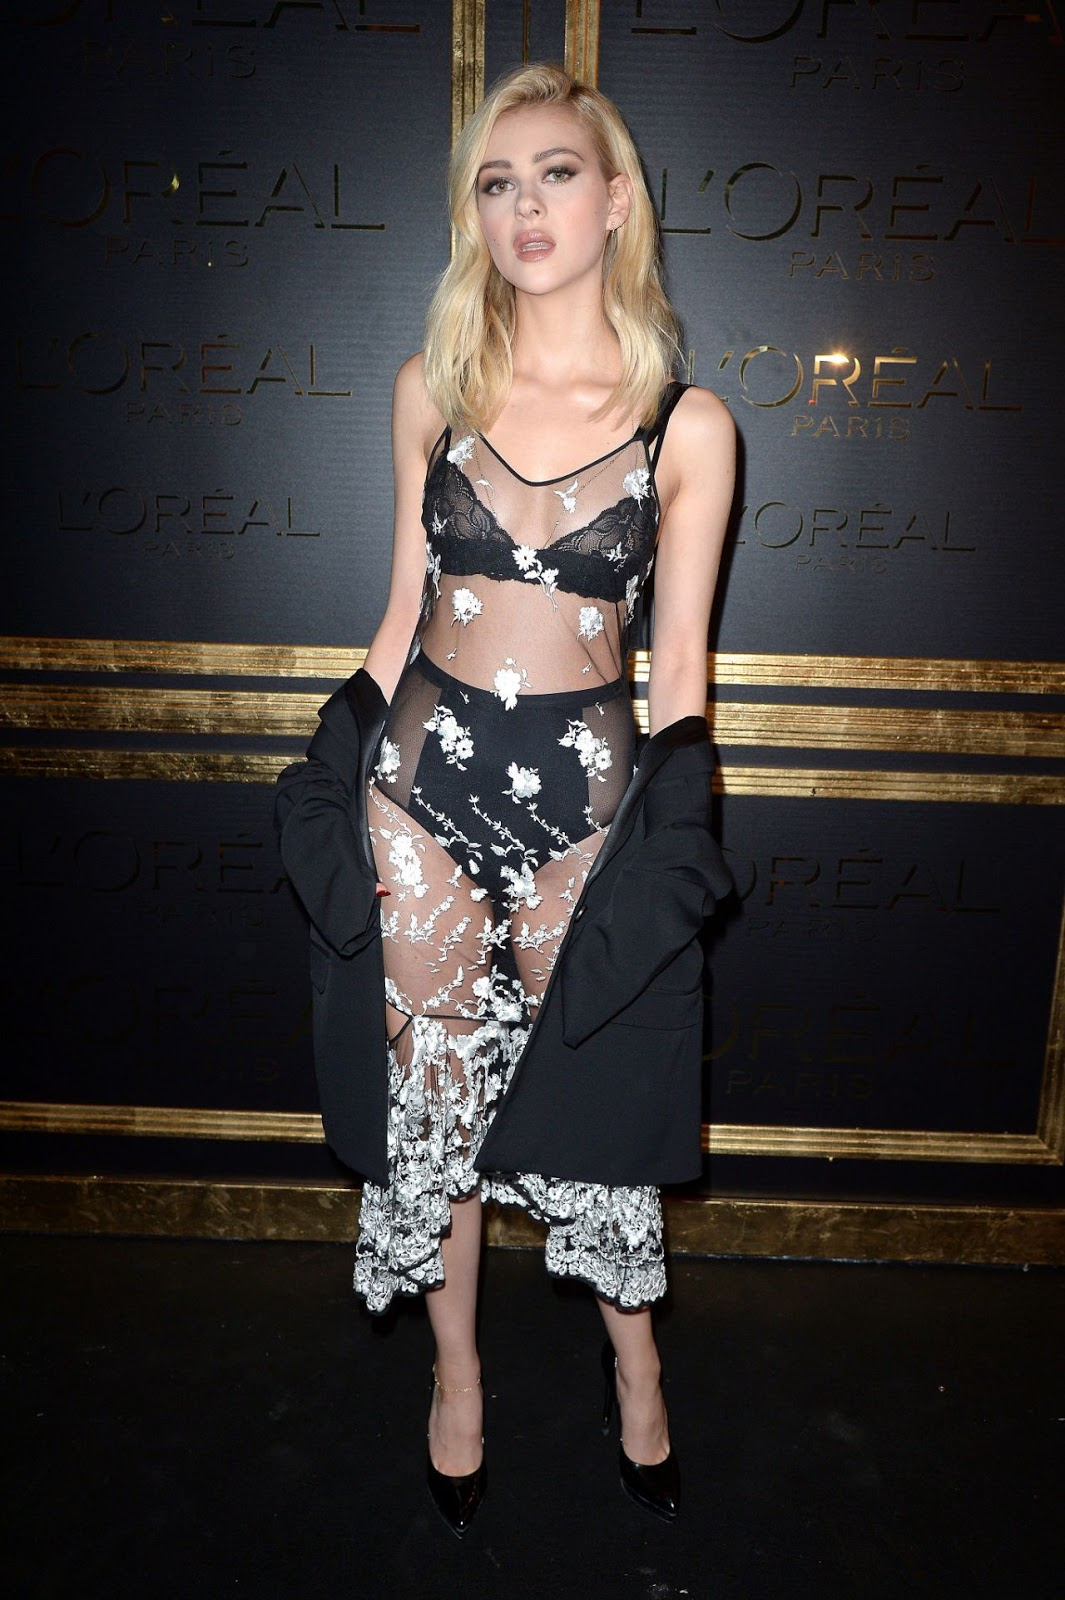 Nicola Peltz at Gold Obsession Party